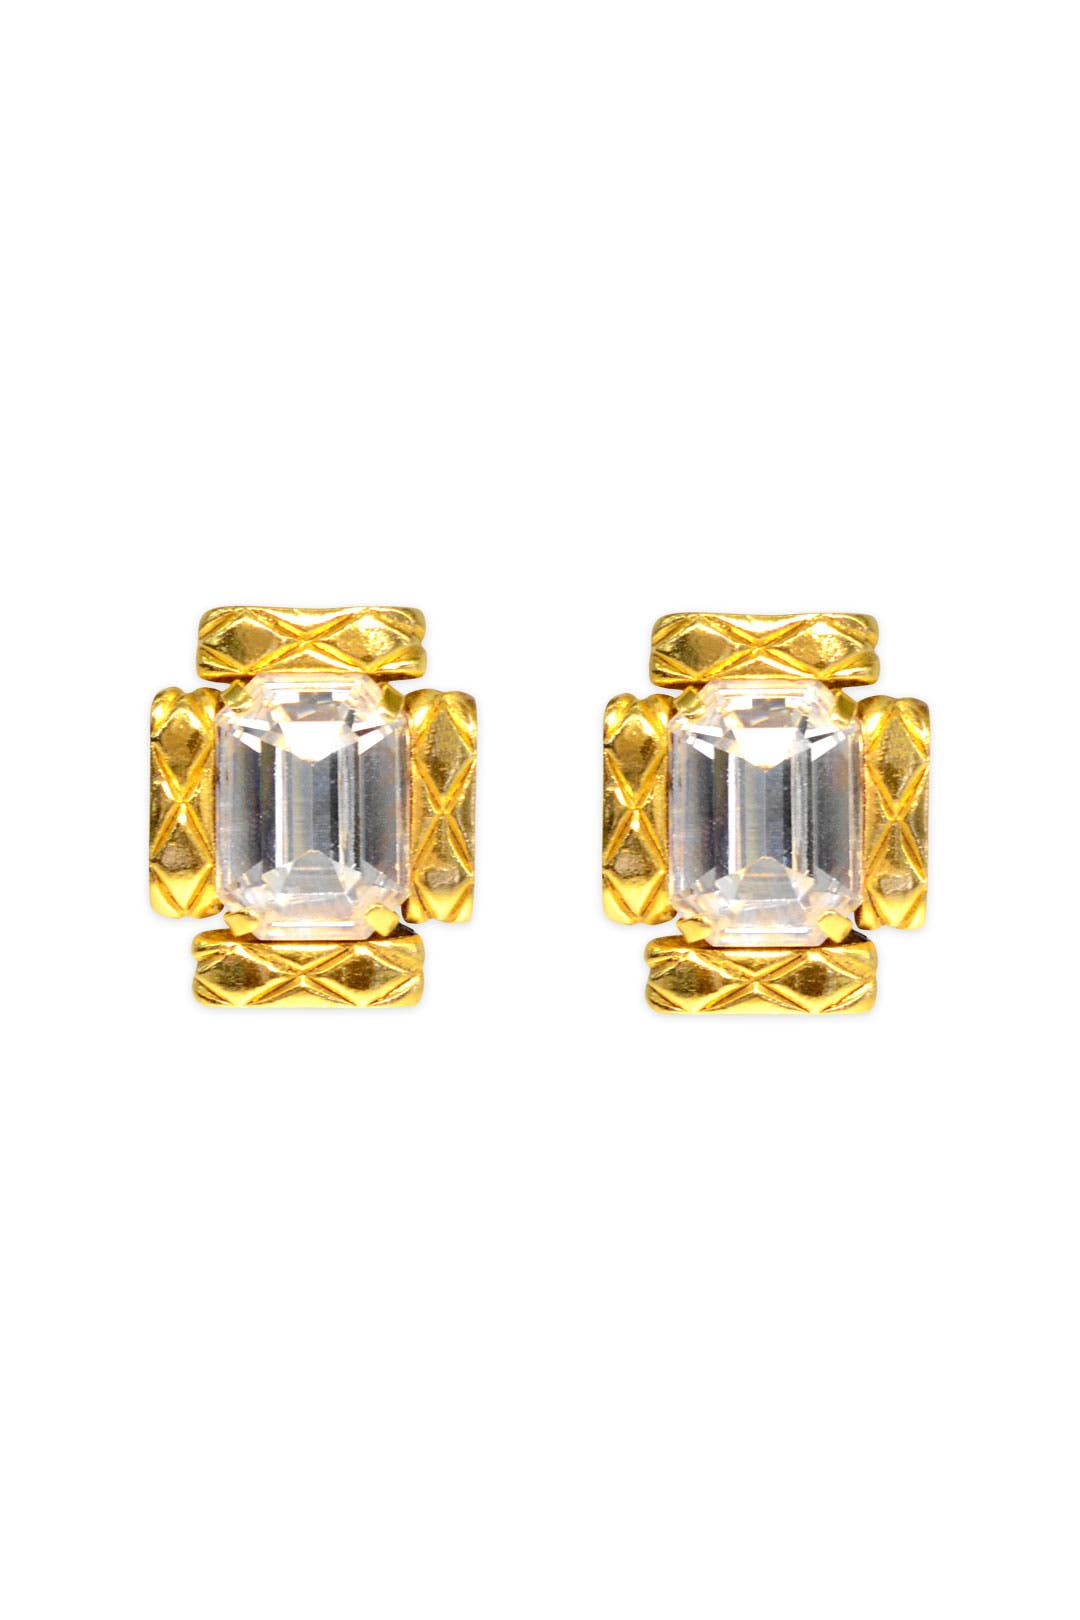 Vintage Chanel Crystal Rectangle Earrings by WGACA Vintage